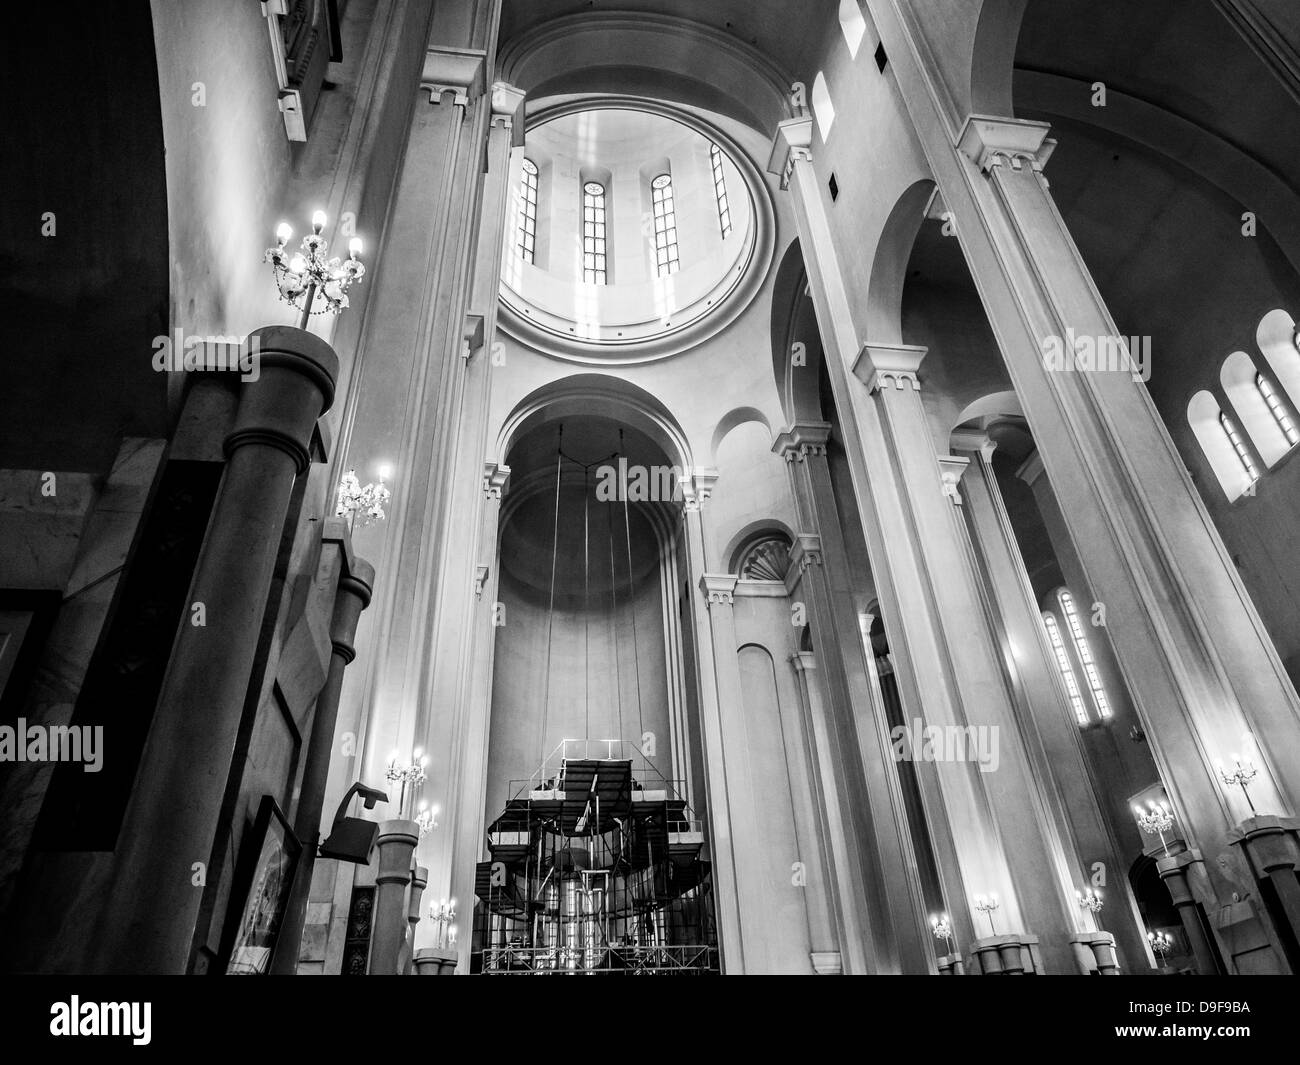 Holy Trinity Cathedral also known as Sameba in Tbilisi, Georgia. - Stock Image